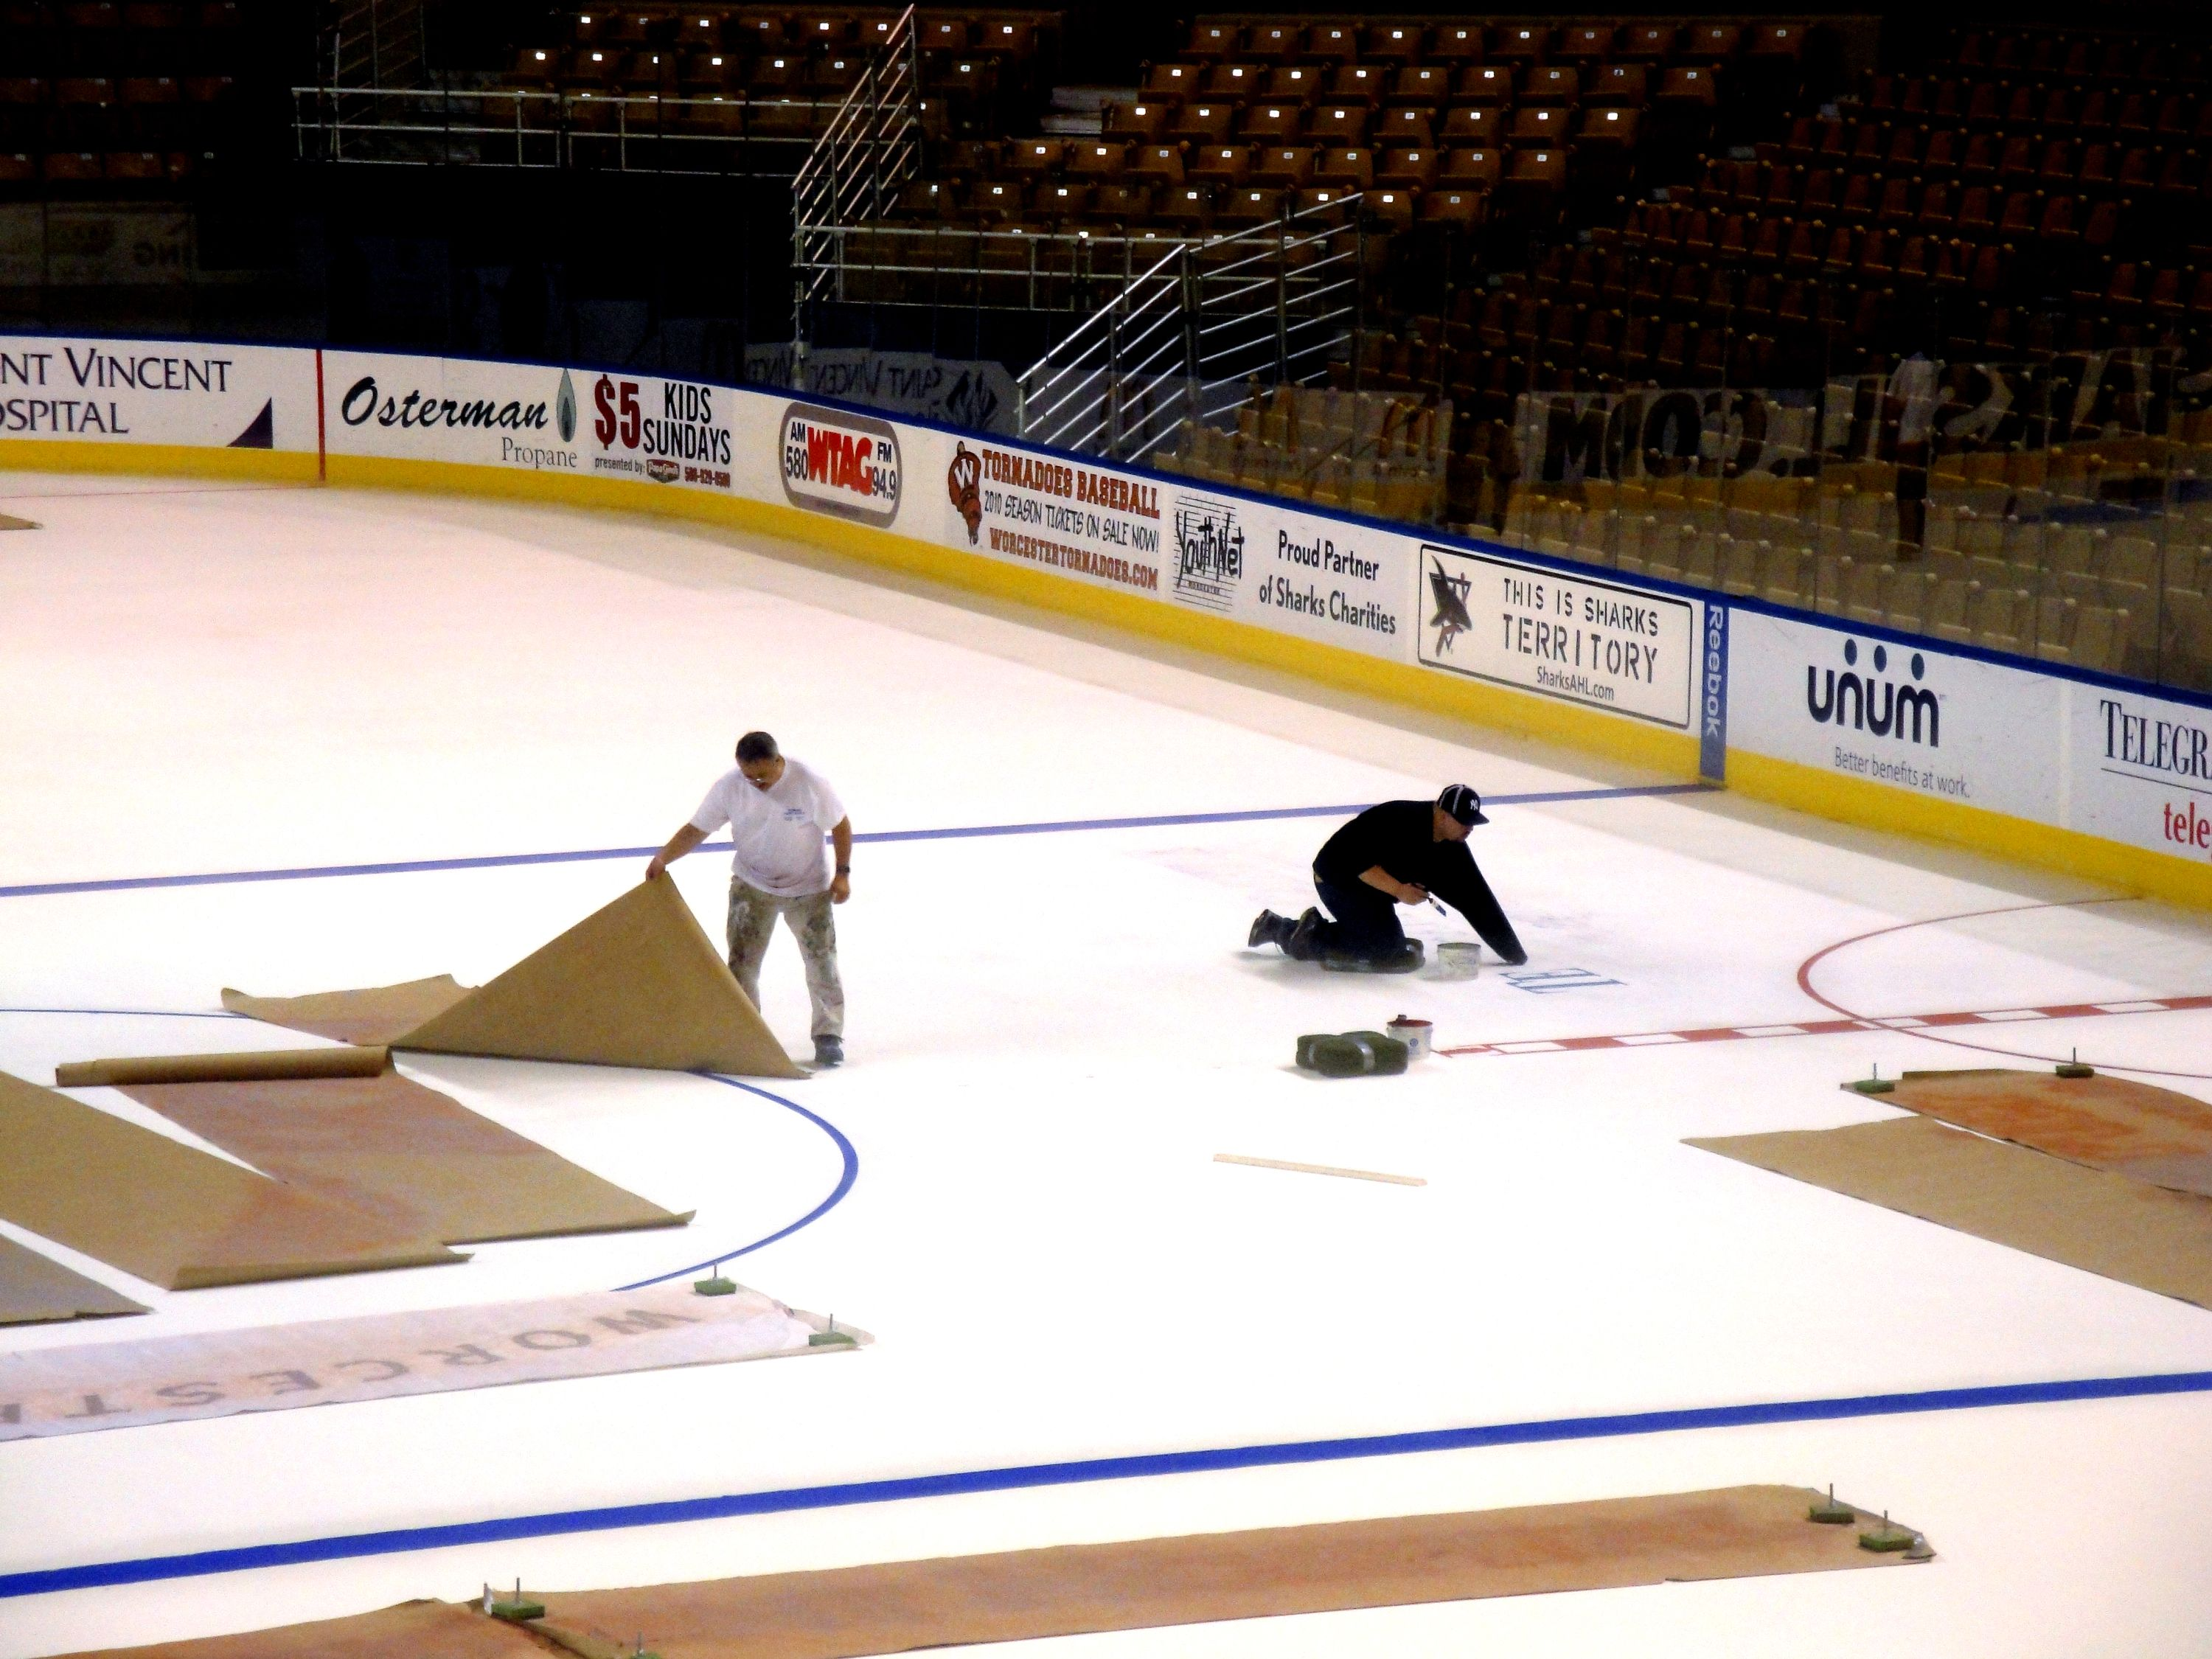 making the ice dcu center